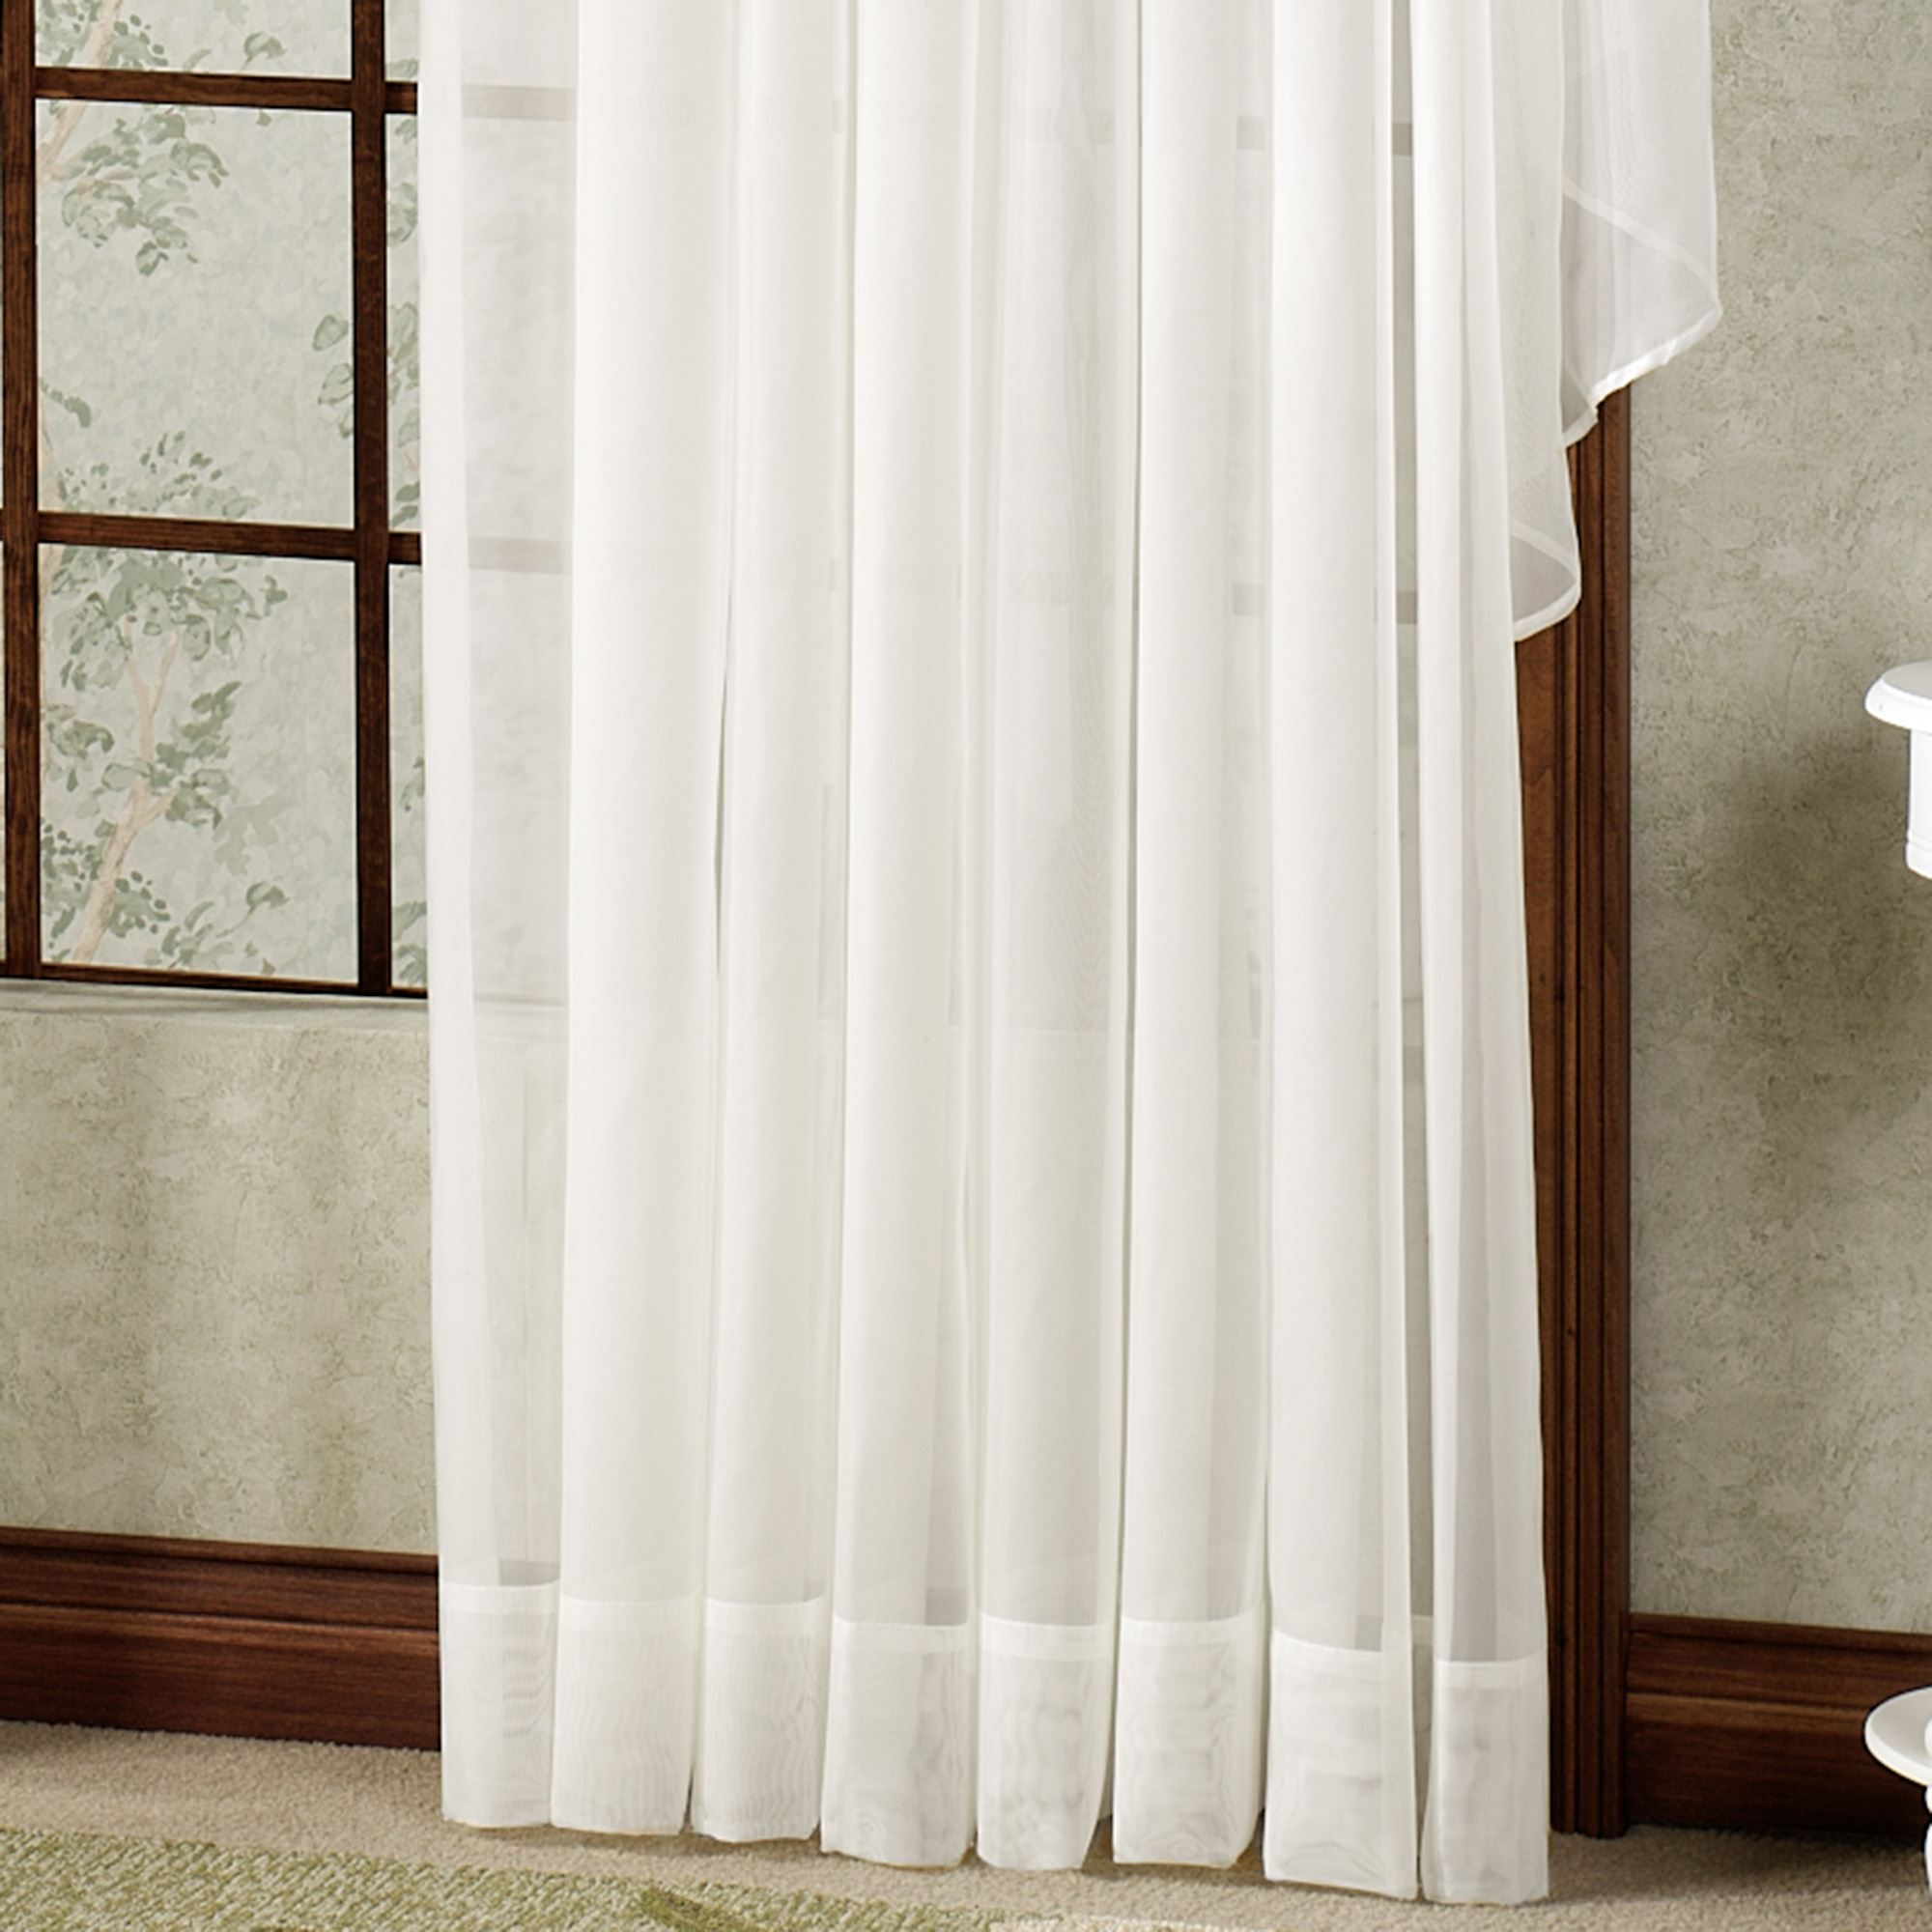 set of curtains white drapes fabric ideas wool voile doors sheer bathroom curtain marker